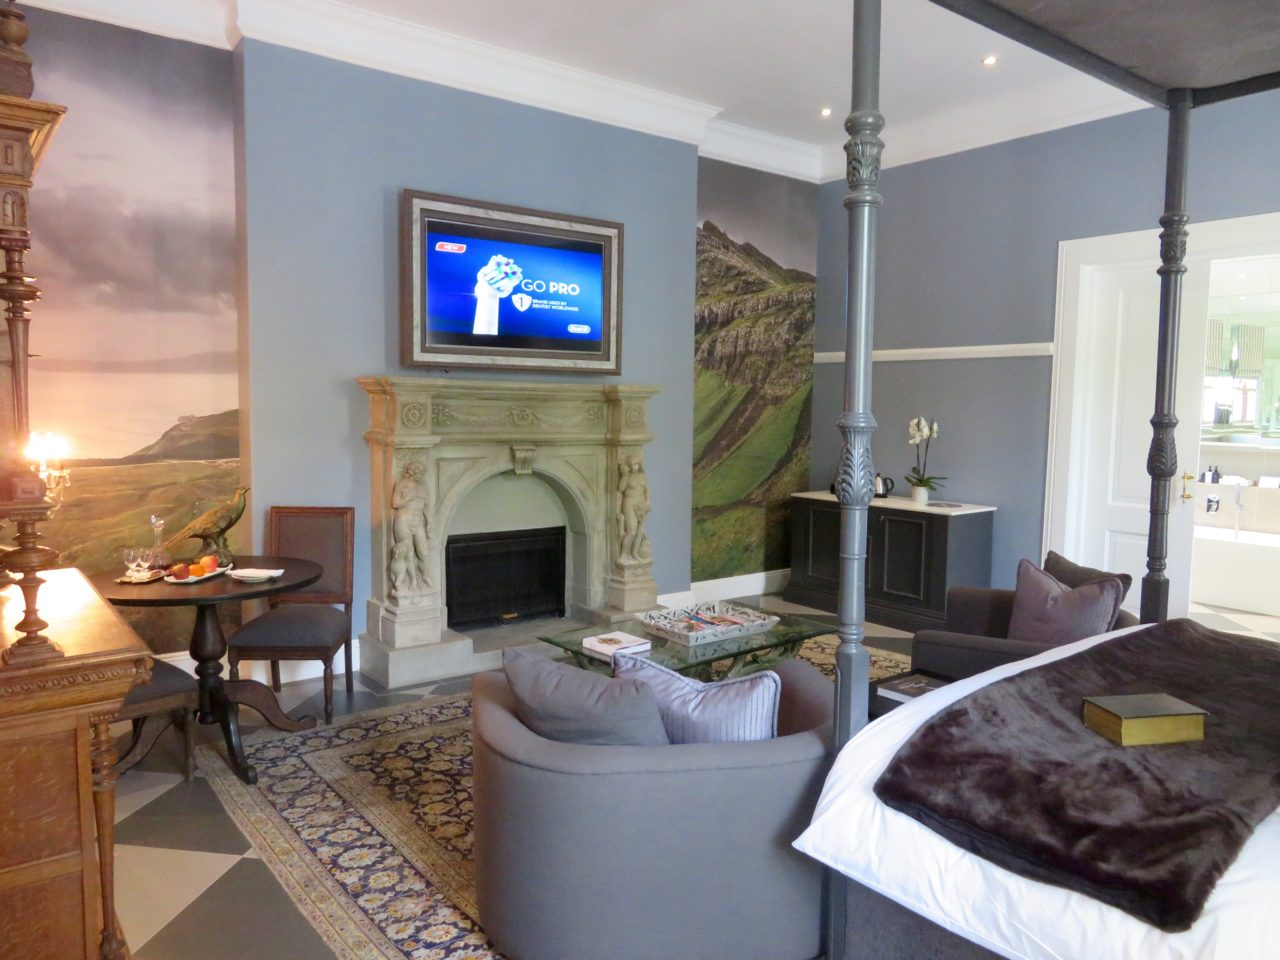 Fairlawns Boutique Hotel & Spa - Johannesburg, South Africa !